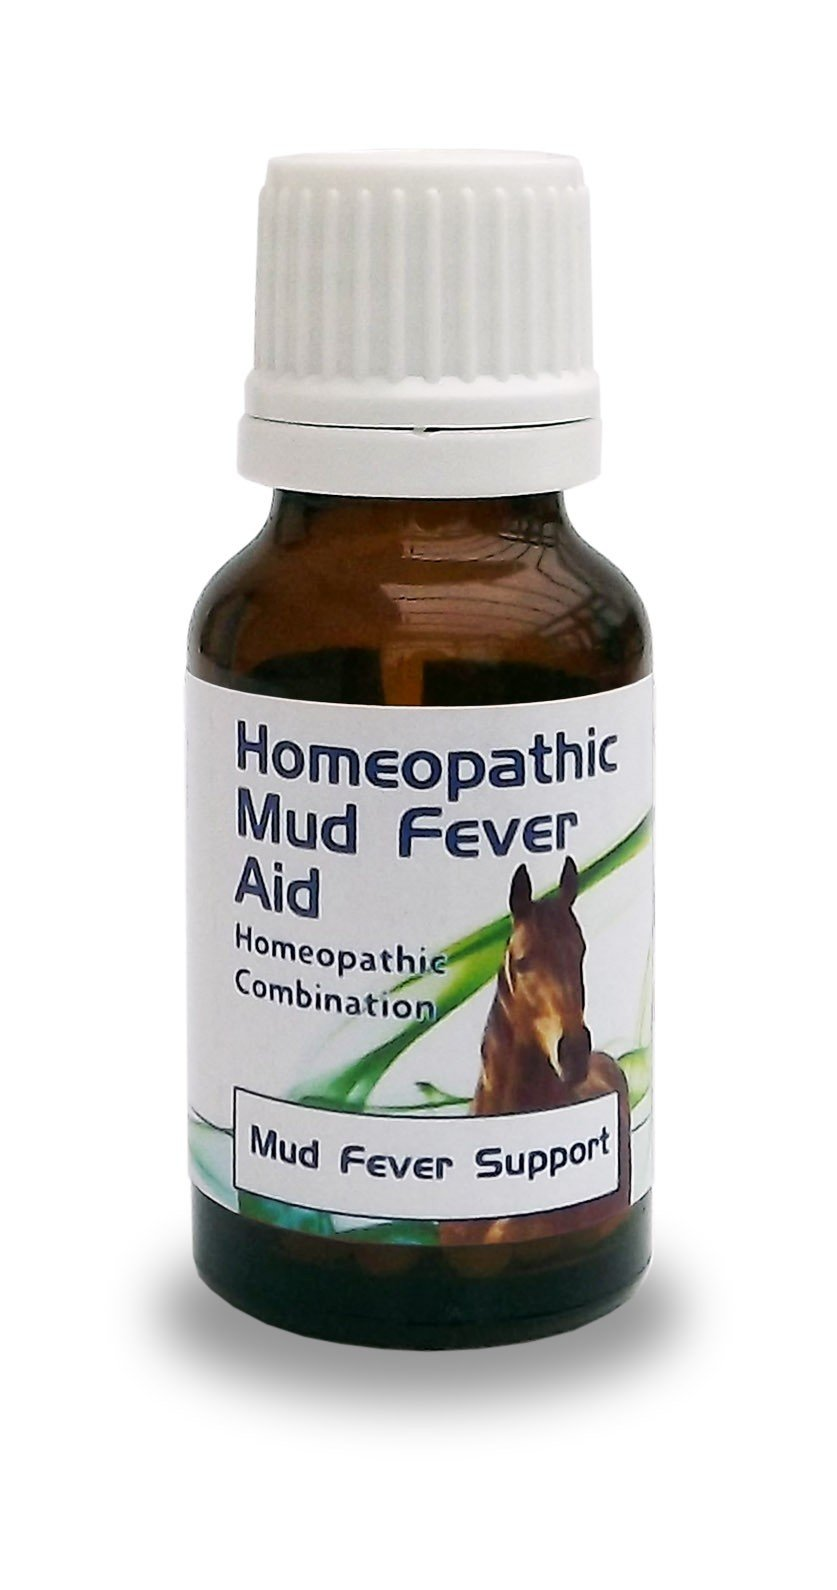 Equi-Homoeopathic Mud Fever Aid 10g